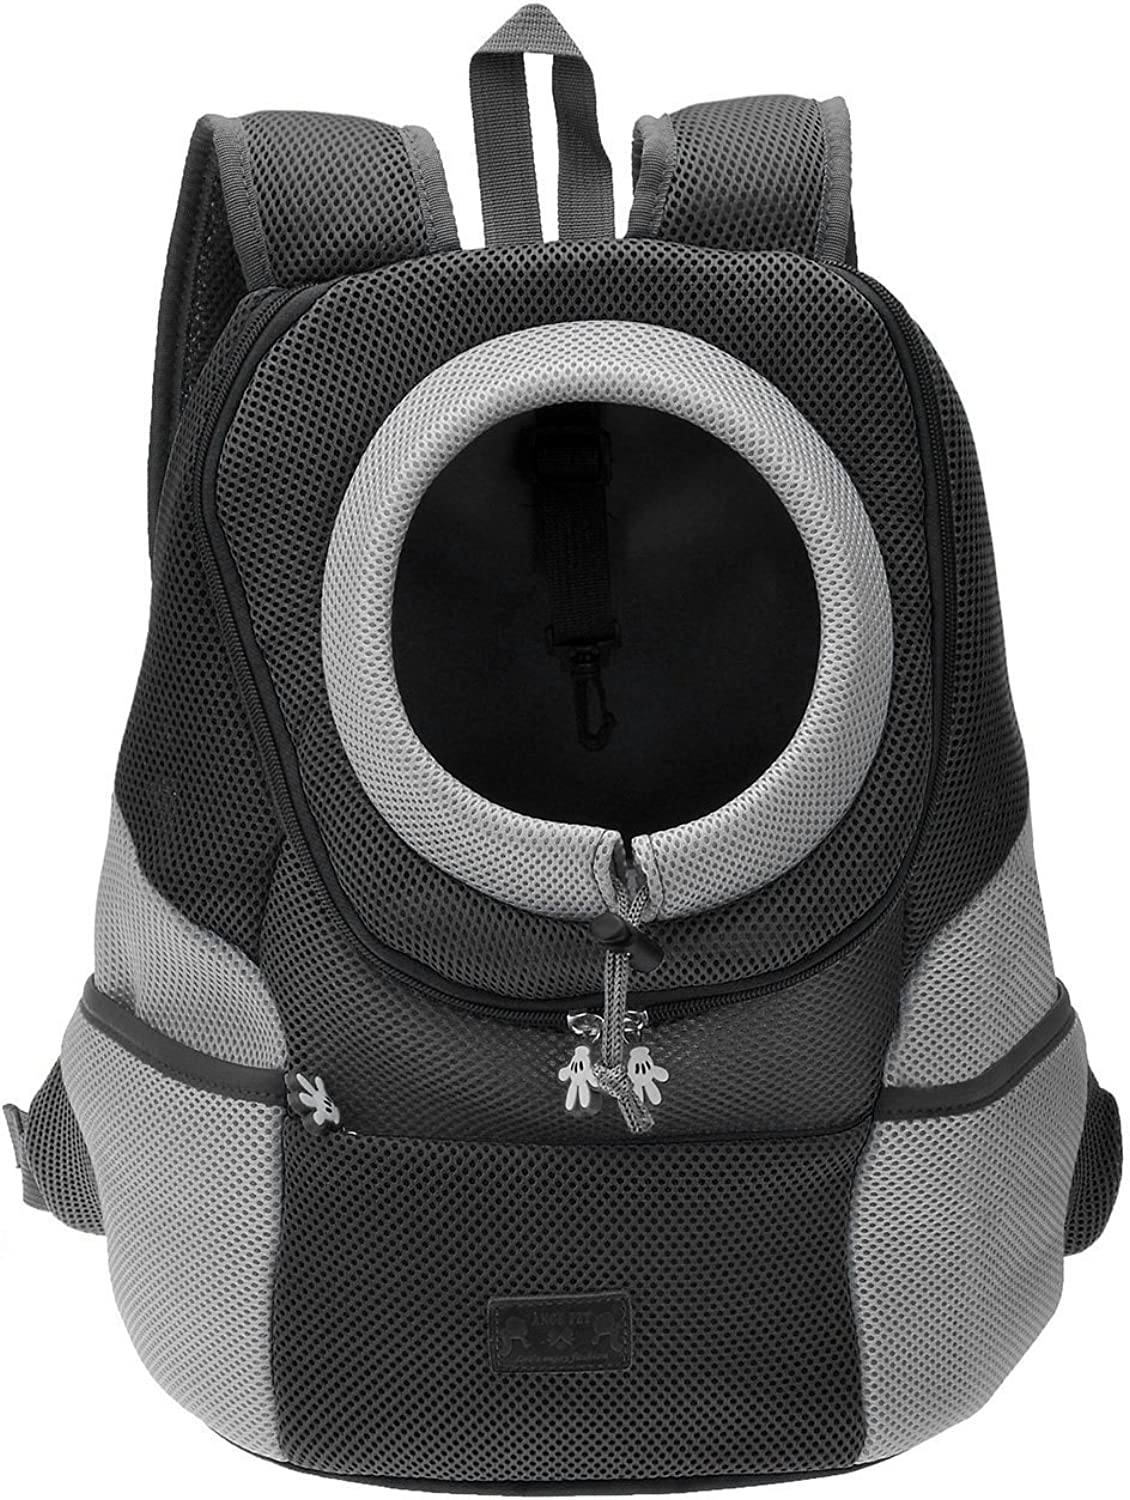 GYHTXHJPET Pet Carrier Backpack Dog Travel Bag Pet front Carrier Bag Mesh Backpack Head out Carrier Double Shouder Bags for Small Dogs (Extra large(8.6 14.9  W17.8  H,less than 16.5lbs), Black)